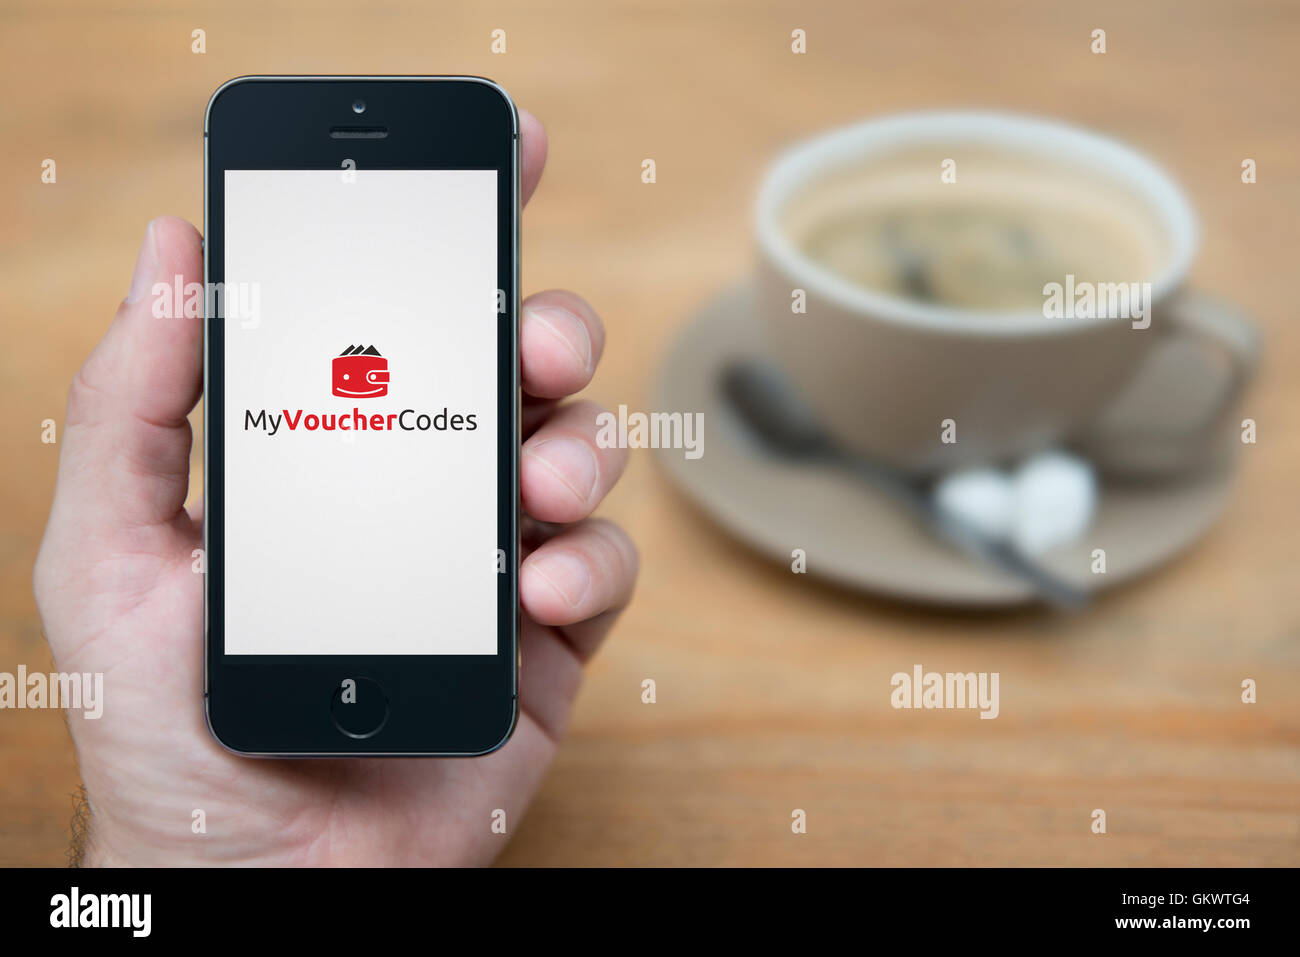 A man looks at his iPhone which displays the My Voucher Codes logo, while sat with a cup of coffee (Editorial use - Stock Image